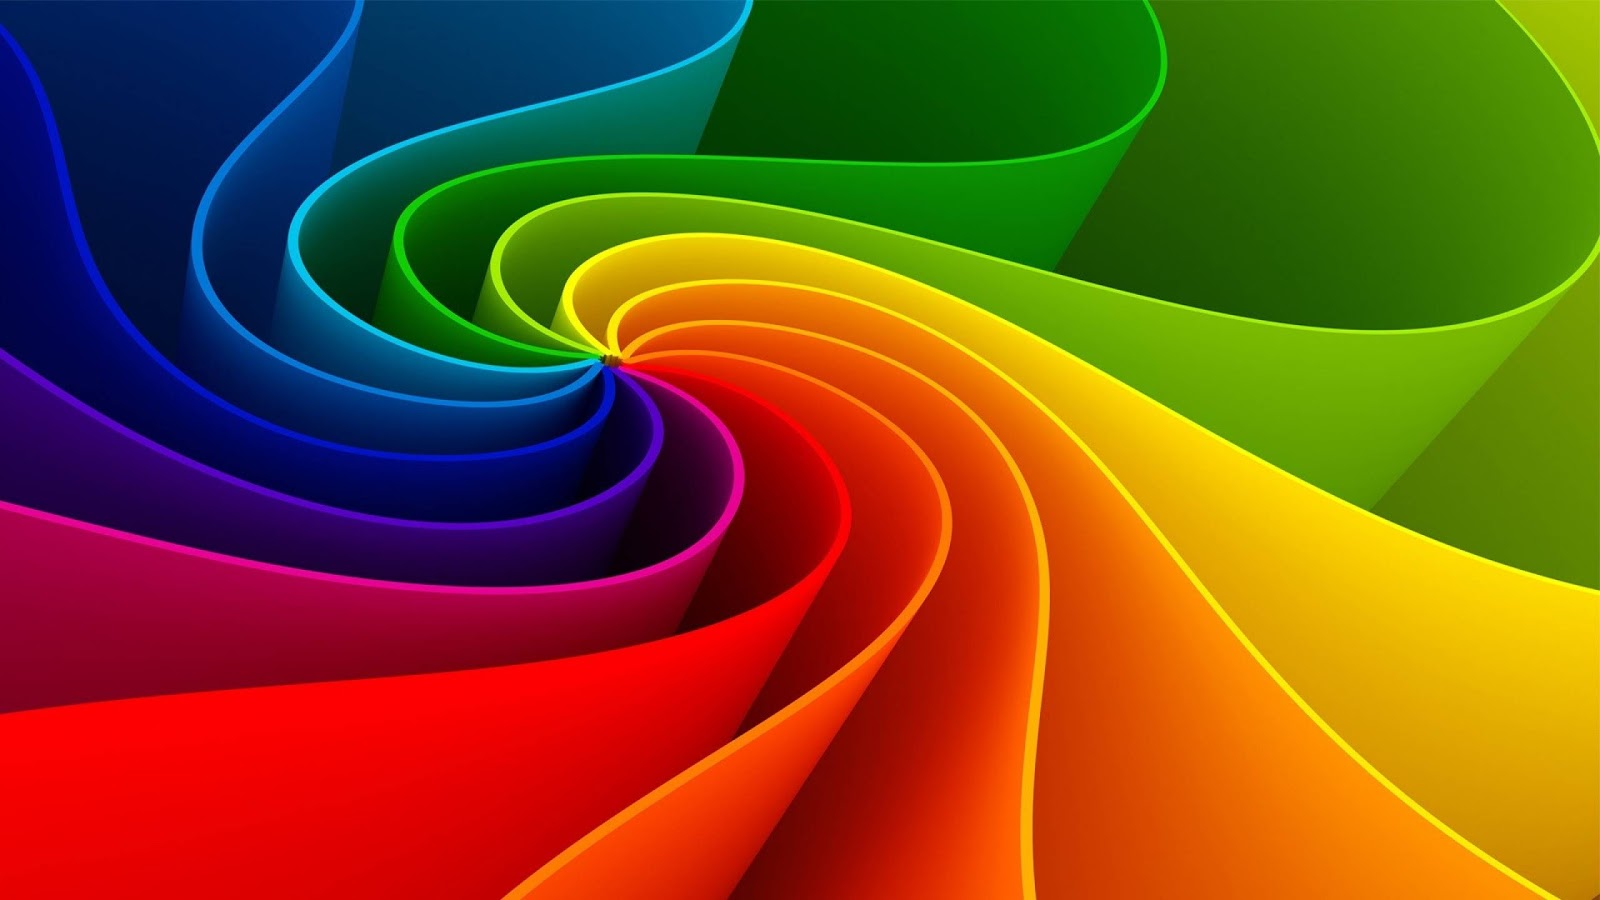 Windows 8 background images - 25 Colors Windows 8 Background And Wallpapers All For Windows 10